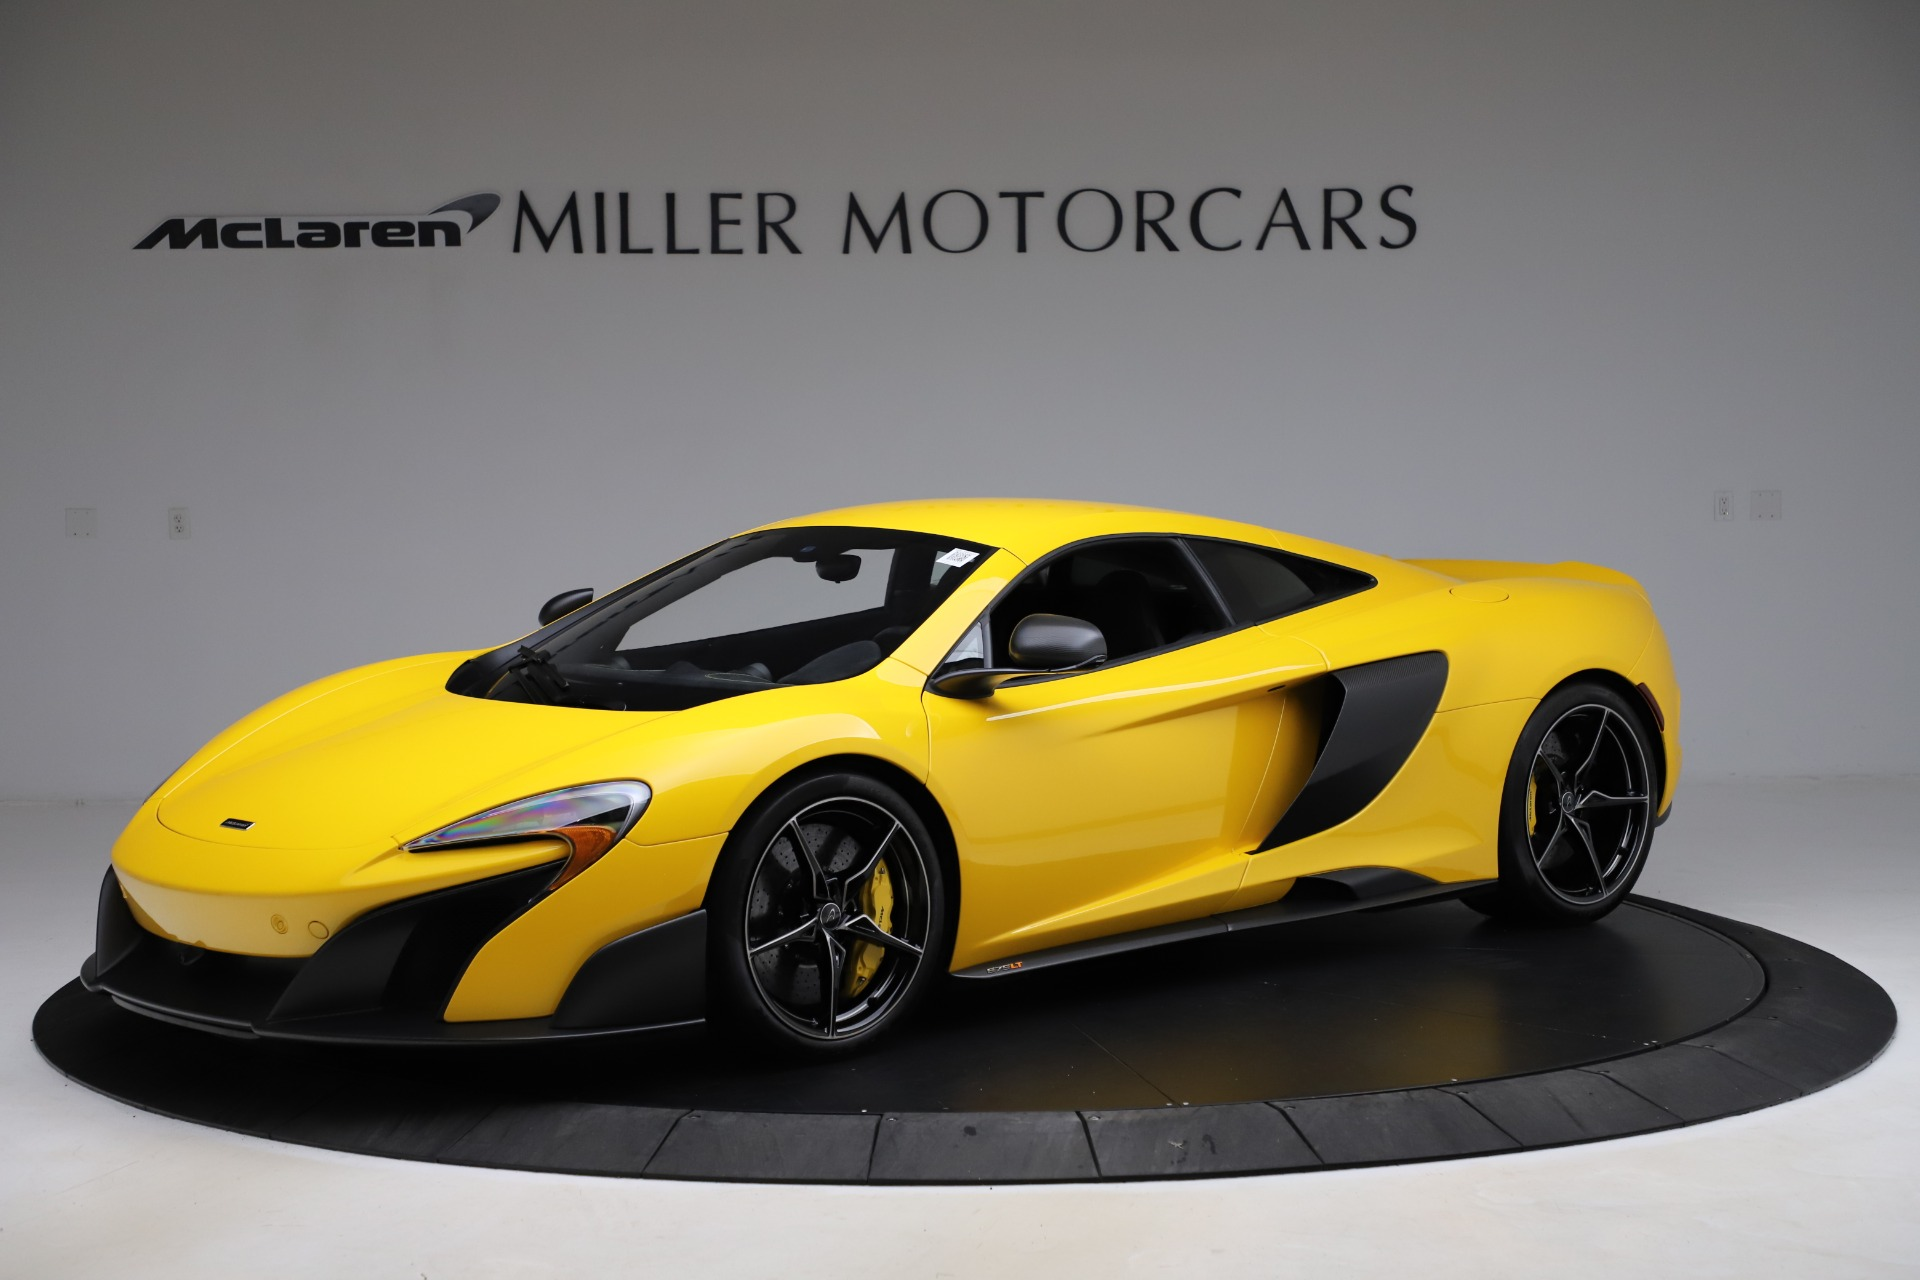 Used 2016 McLaren 675LT for sale $225,900 at Rolls-Royce Motor Cars Greenwich in Greenwich CT 06830 1